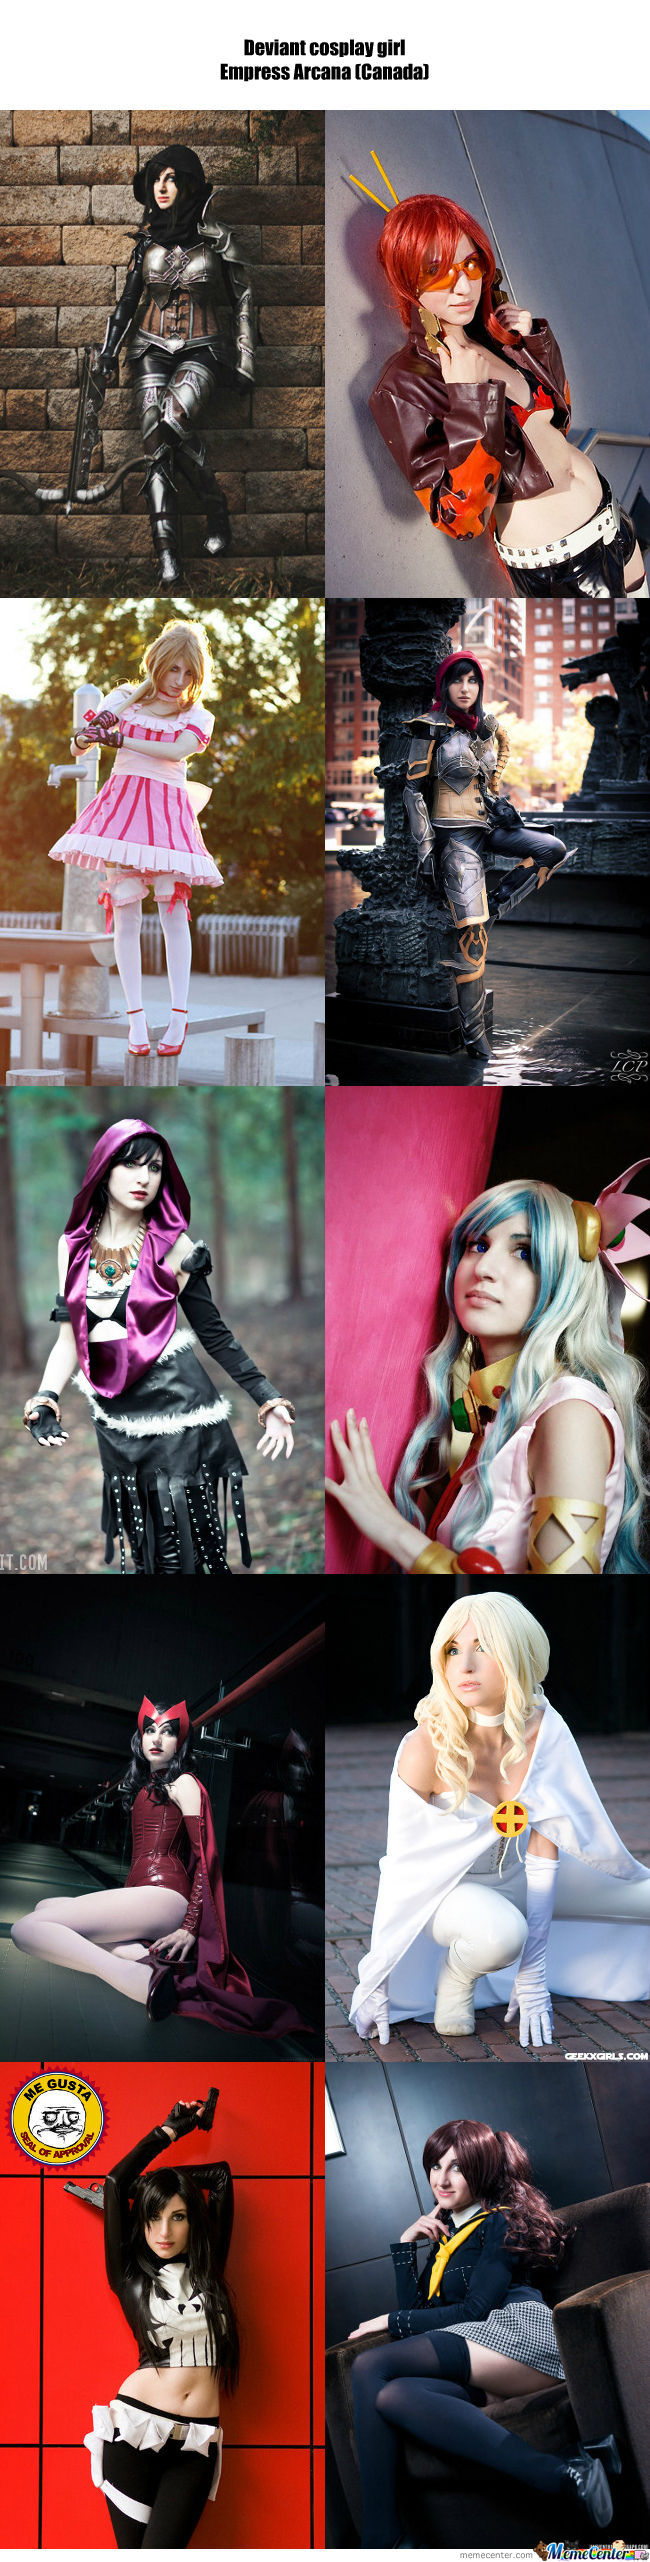 Cosplay Girl 76 : Empress Arcana (Canada)